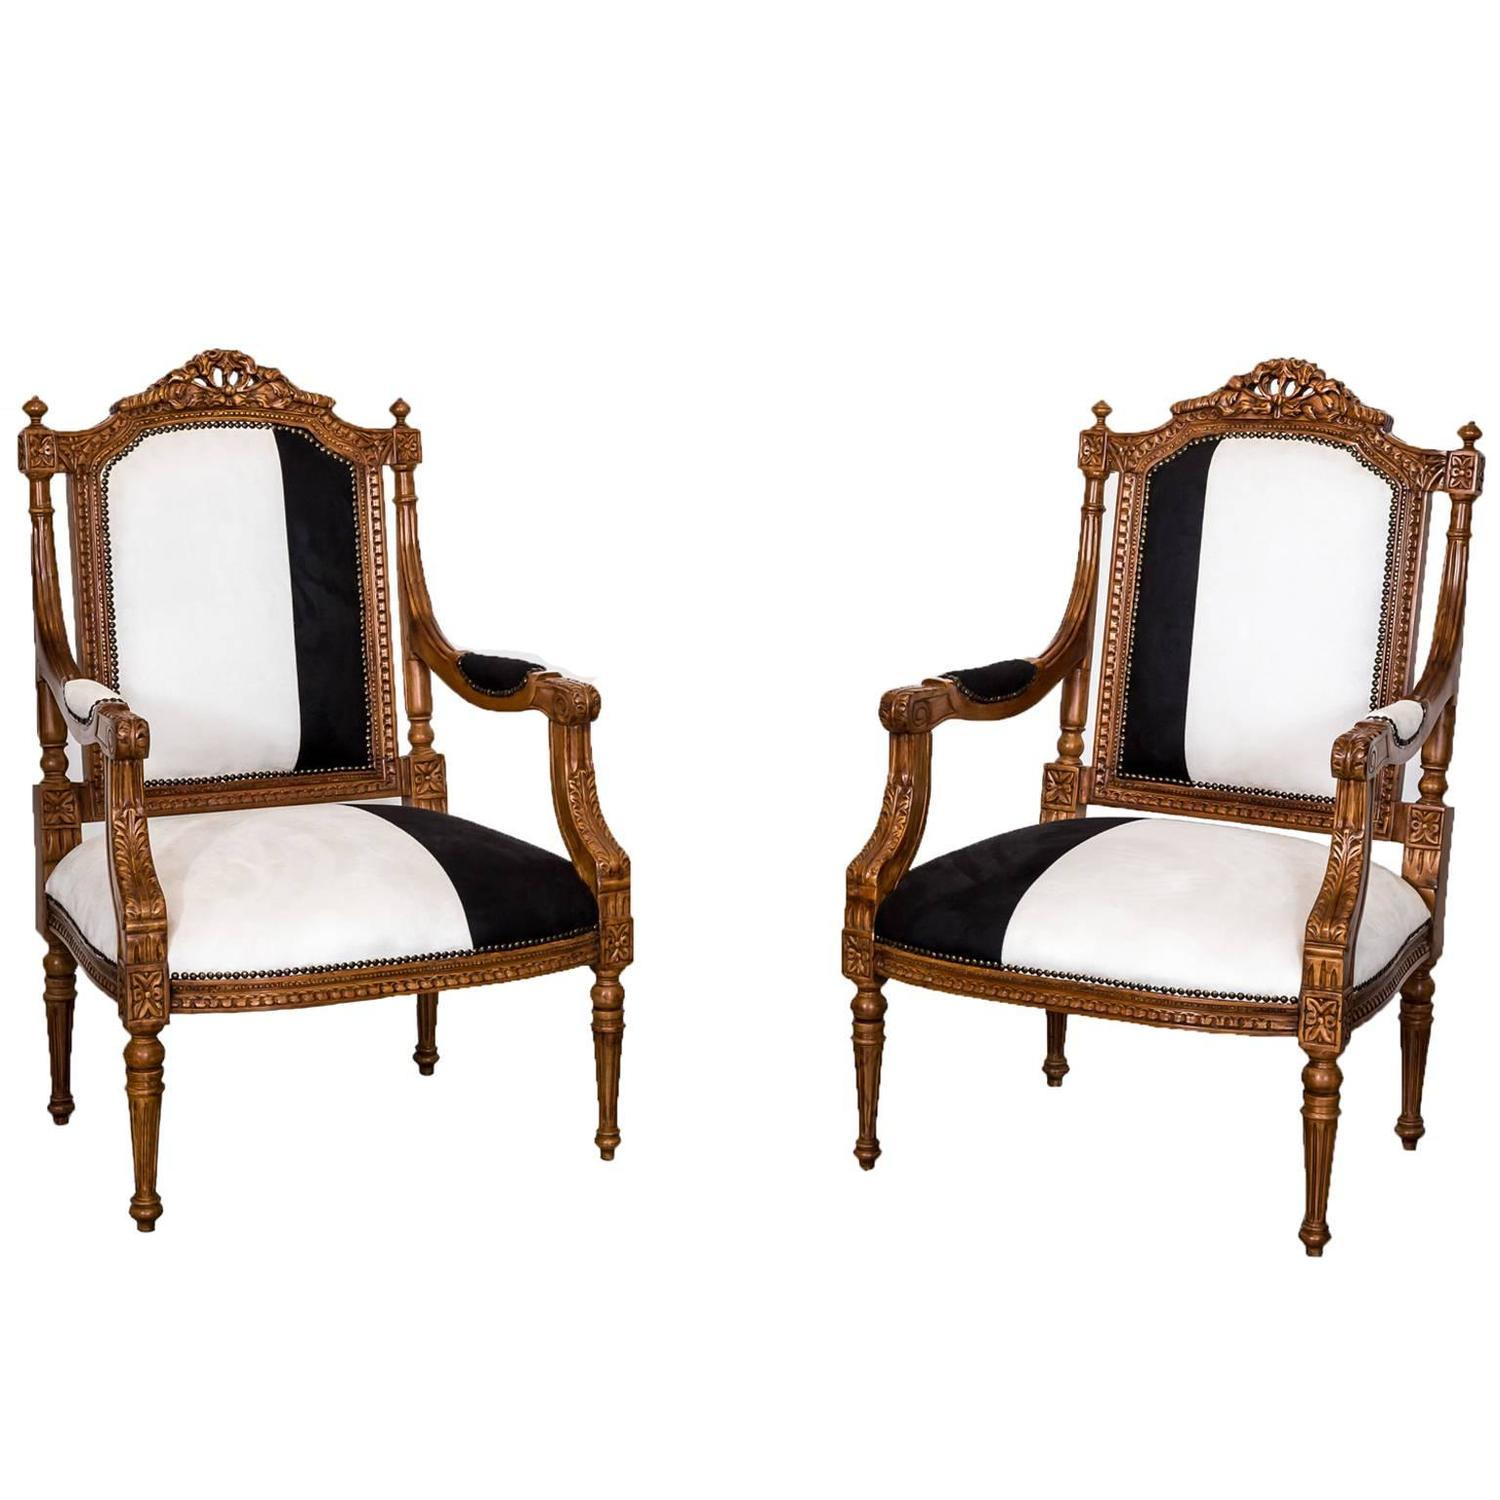 Colonial Chair Pair Of Antique Anglo Indian Or British Colonial Open